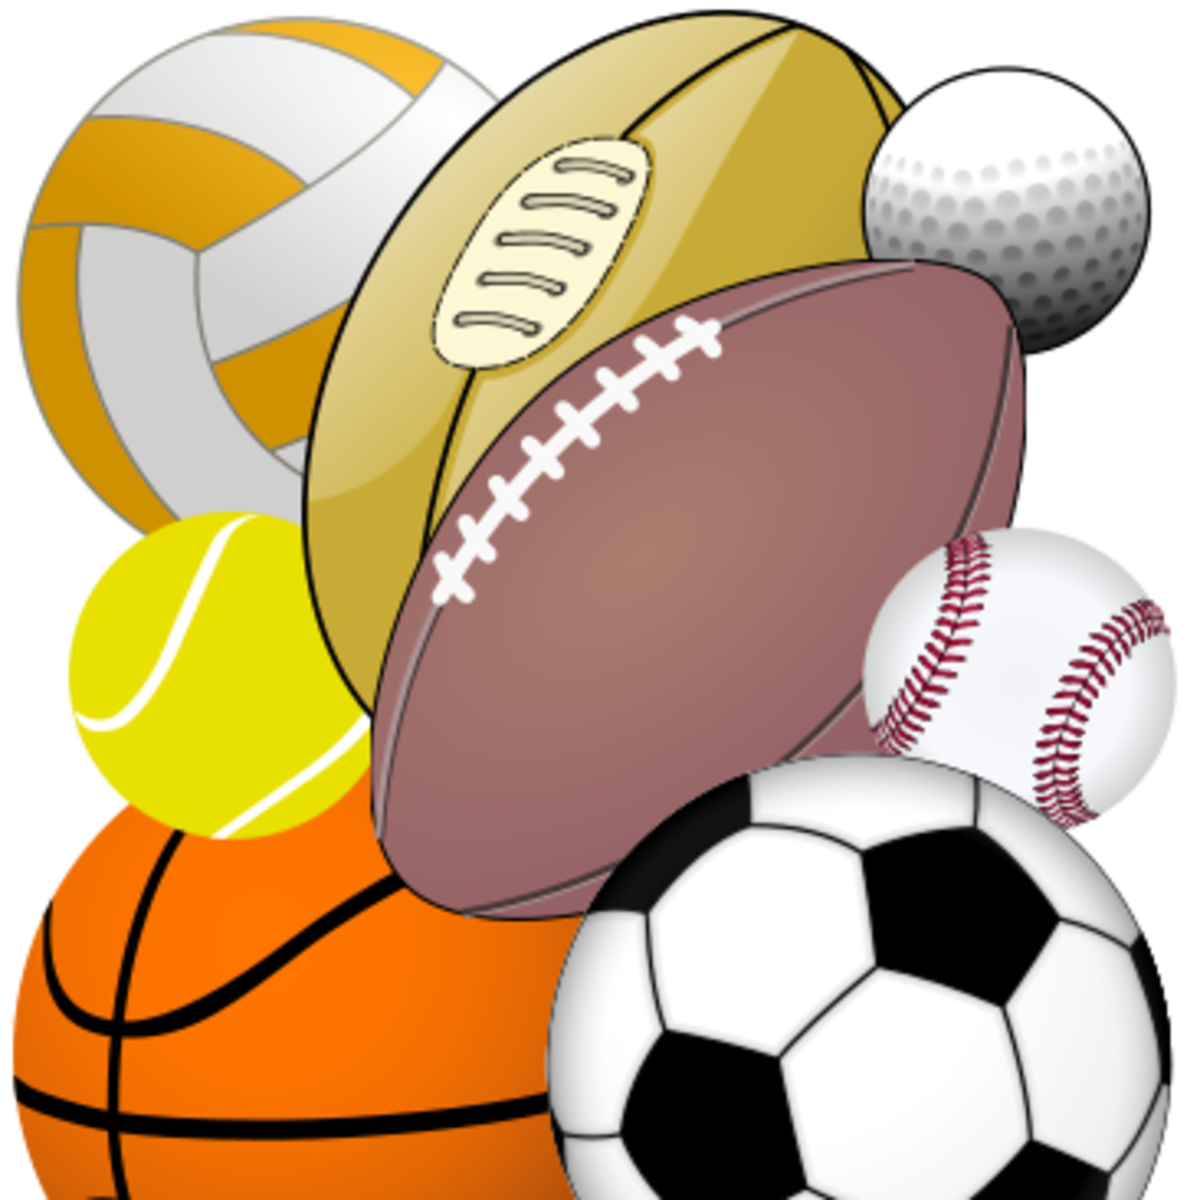 Clipart baseball equipment clip freeuse download Sports Equipment Clipart physical education - Free Clipart on ... clip freeuse download